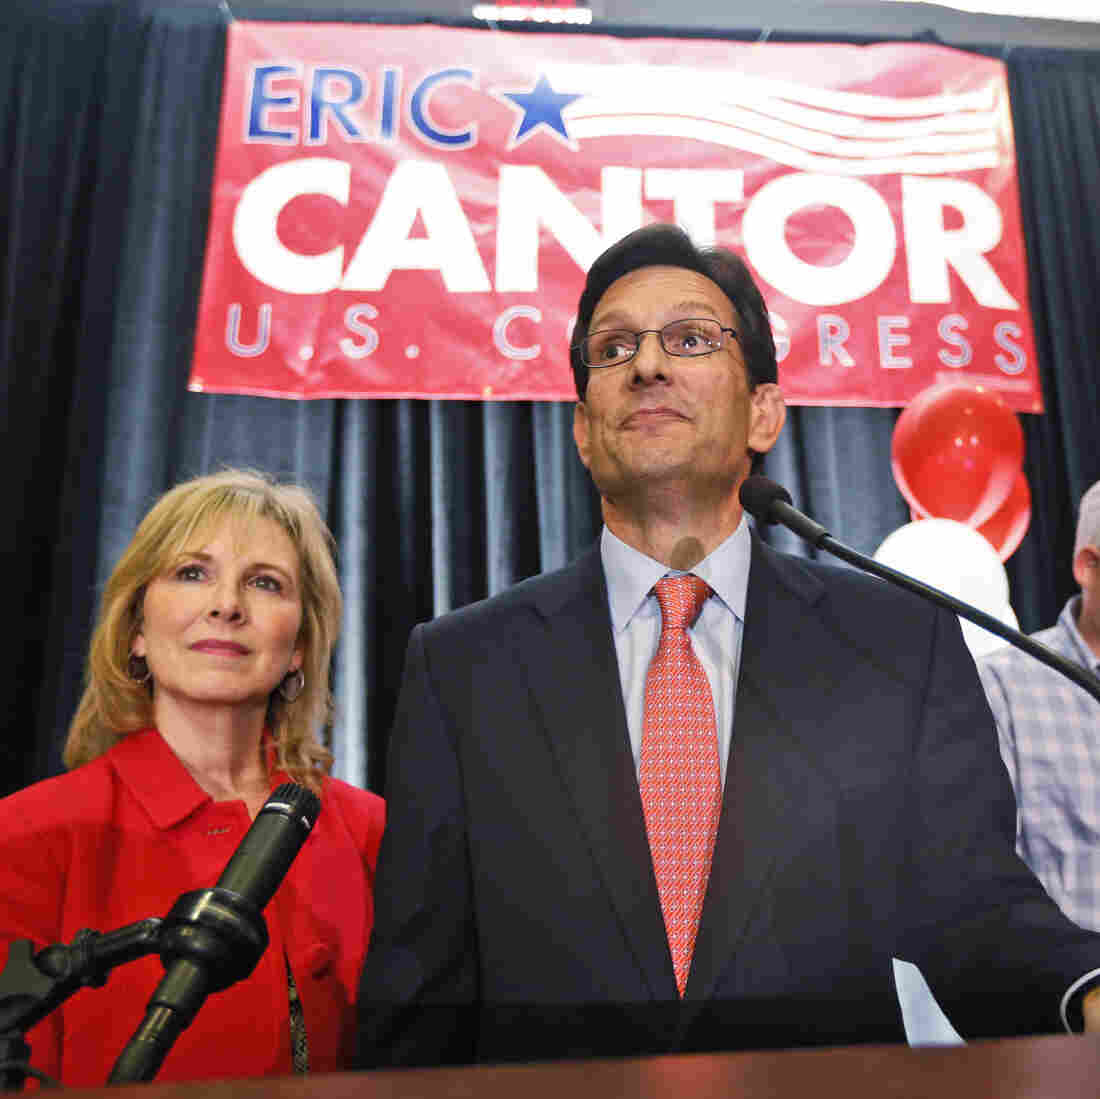 House Majority Leader Eric Cantor, R-Va., delivers his concession speech as his wife, Diana, listens in Richmond on Tuesday.